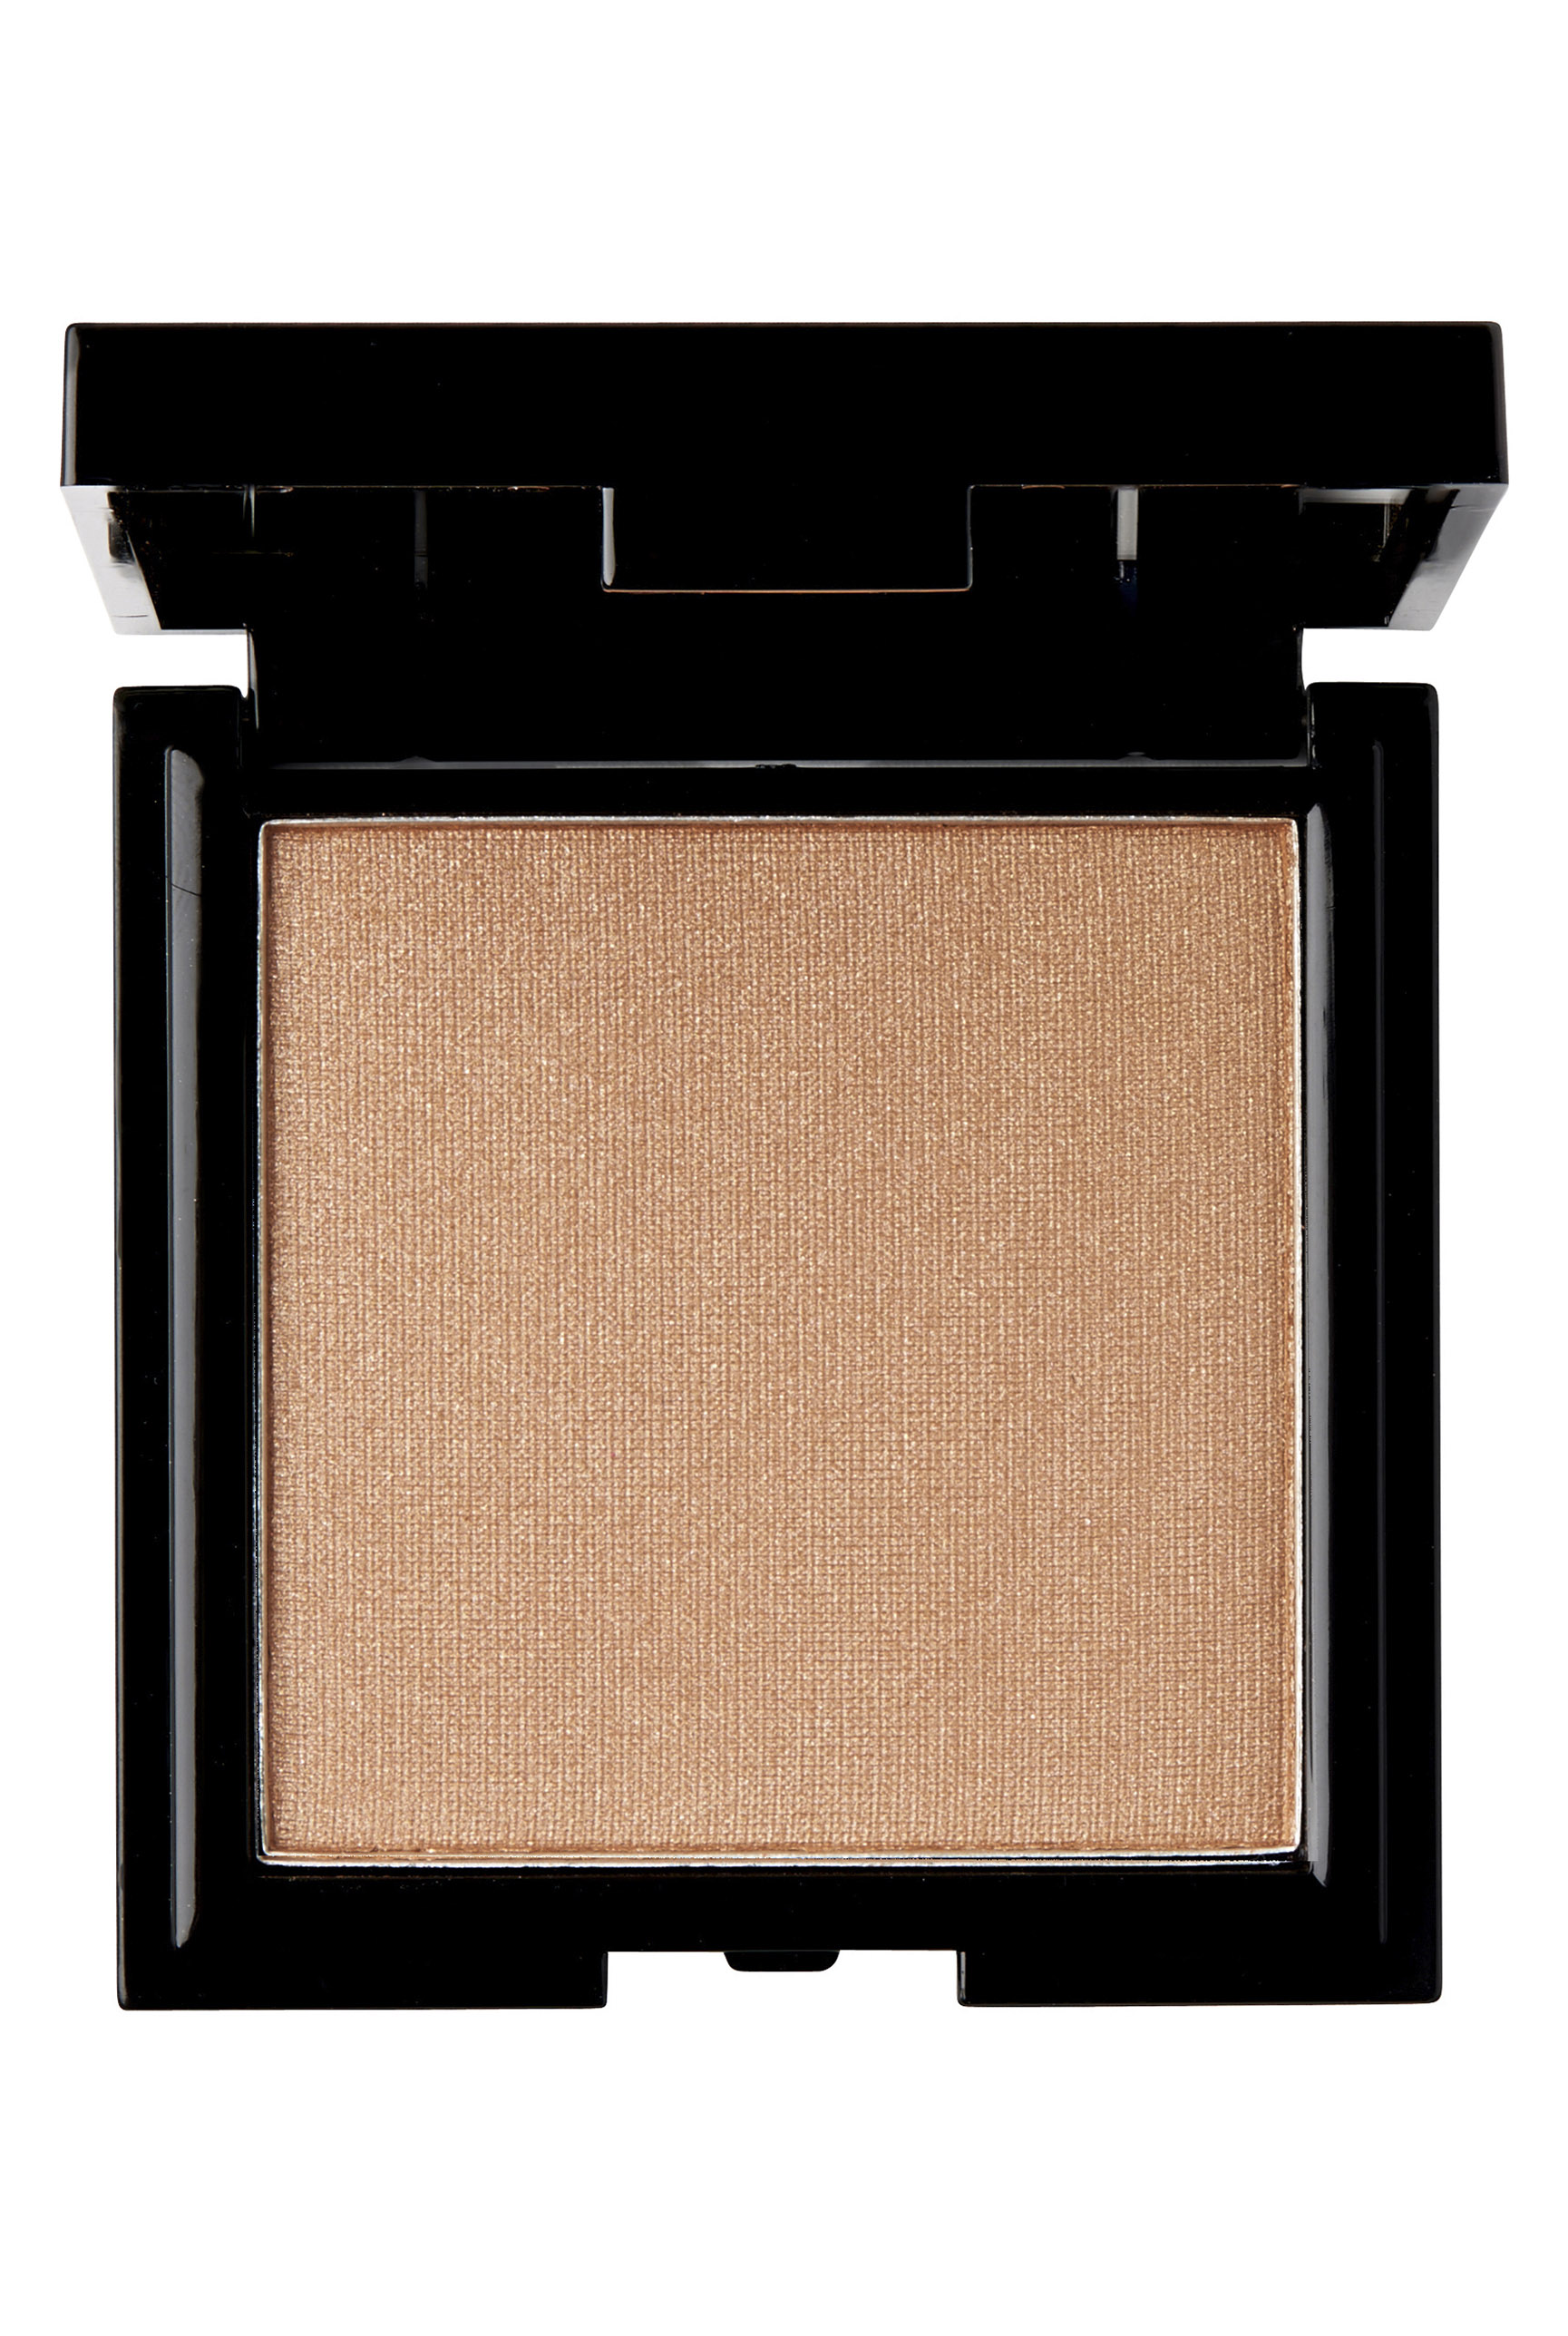 60172153_witcherybeauty-bronzer-in-sahara-21-90